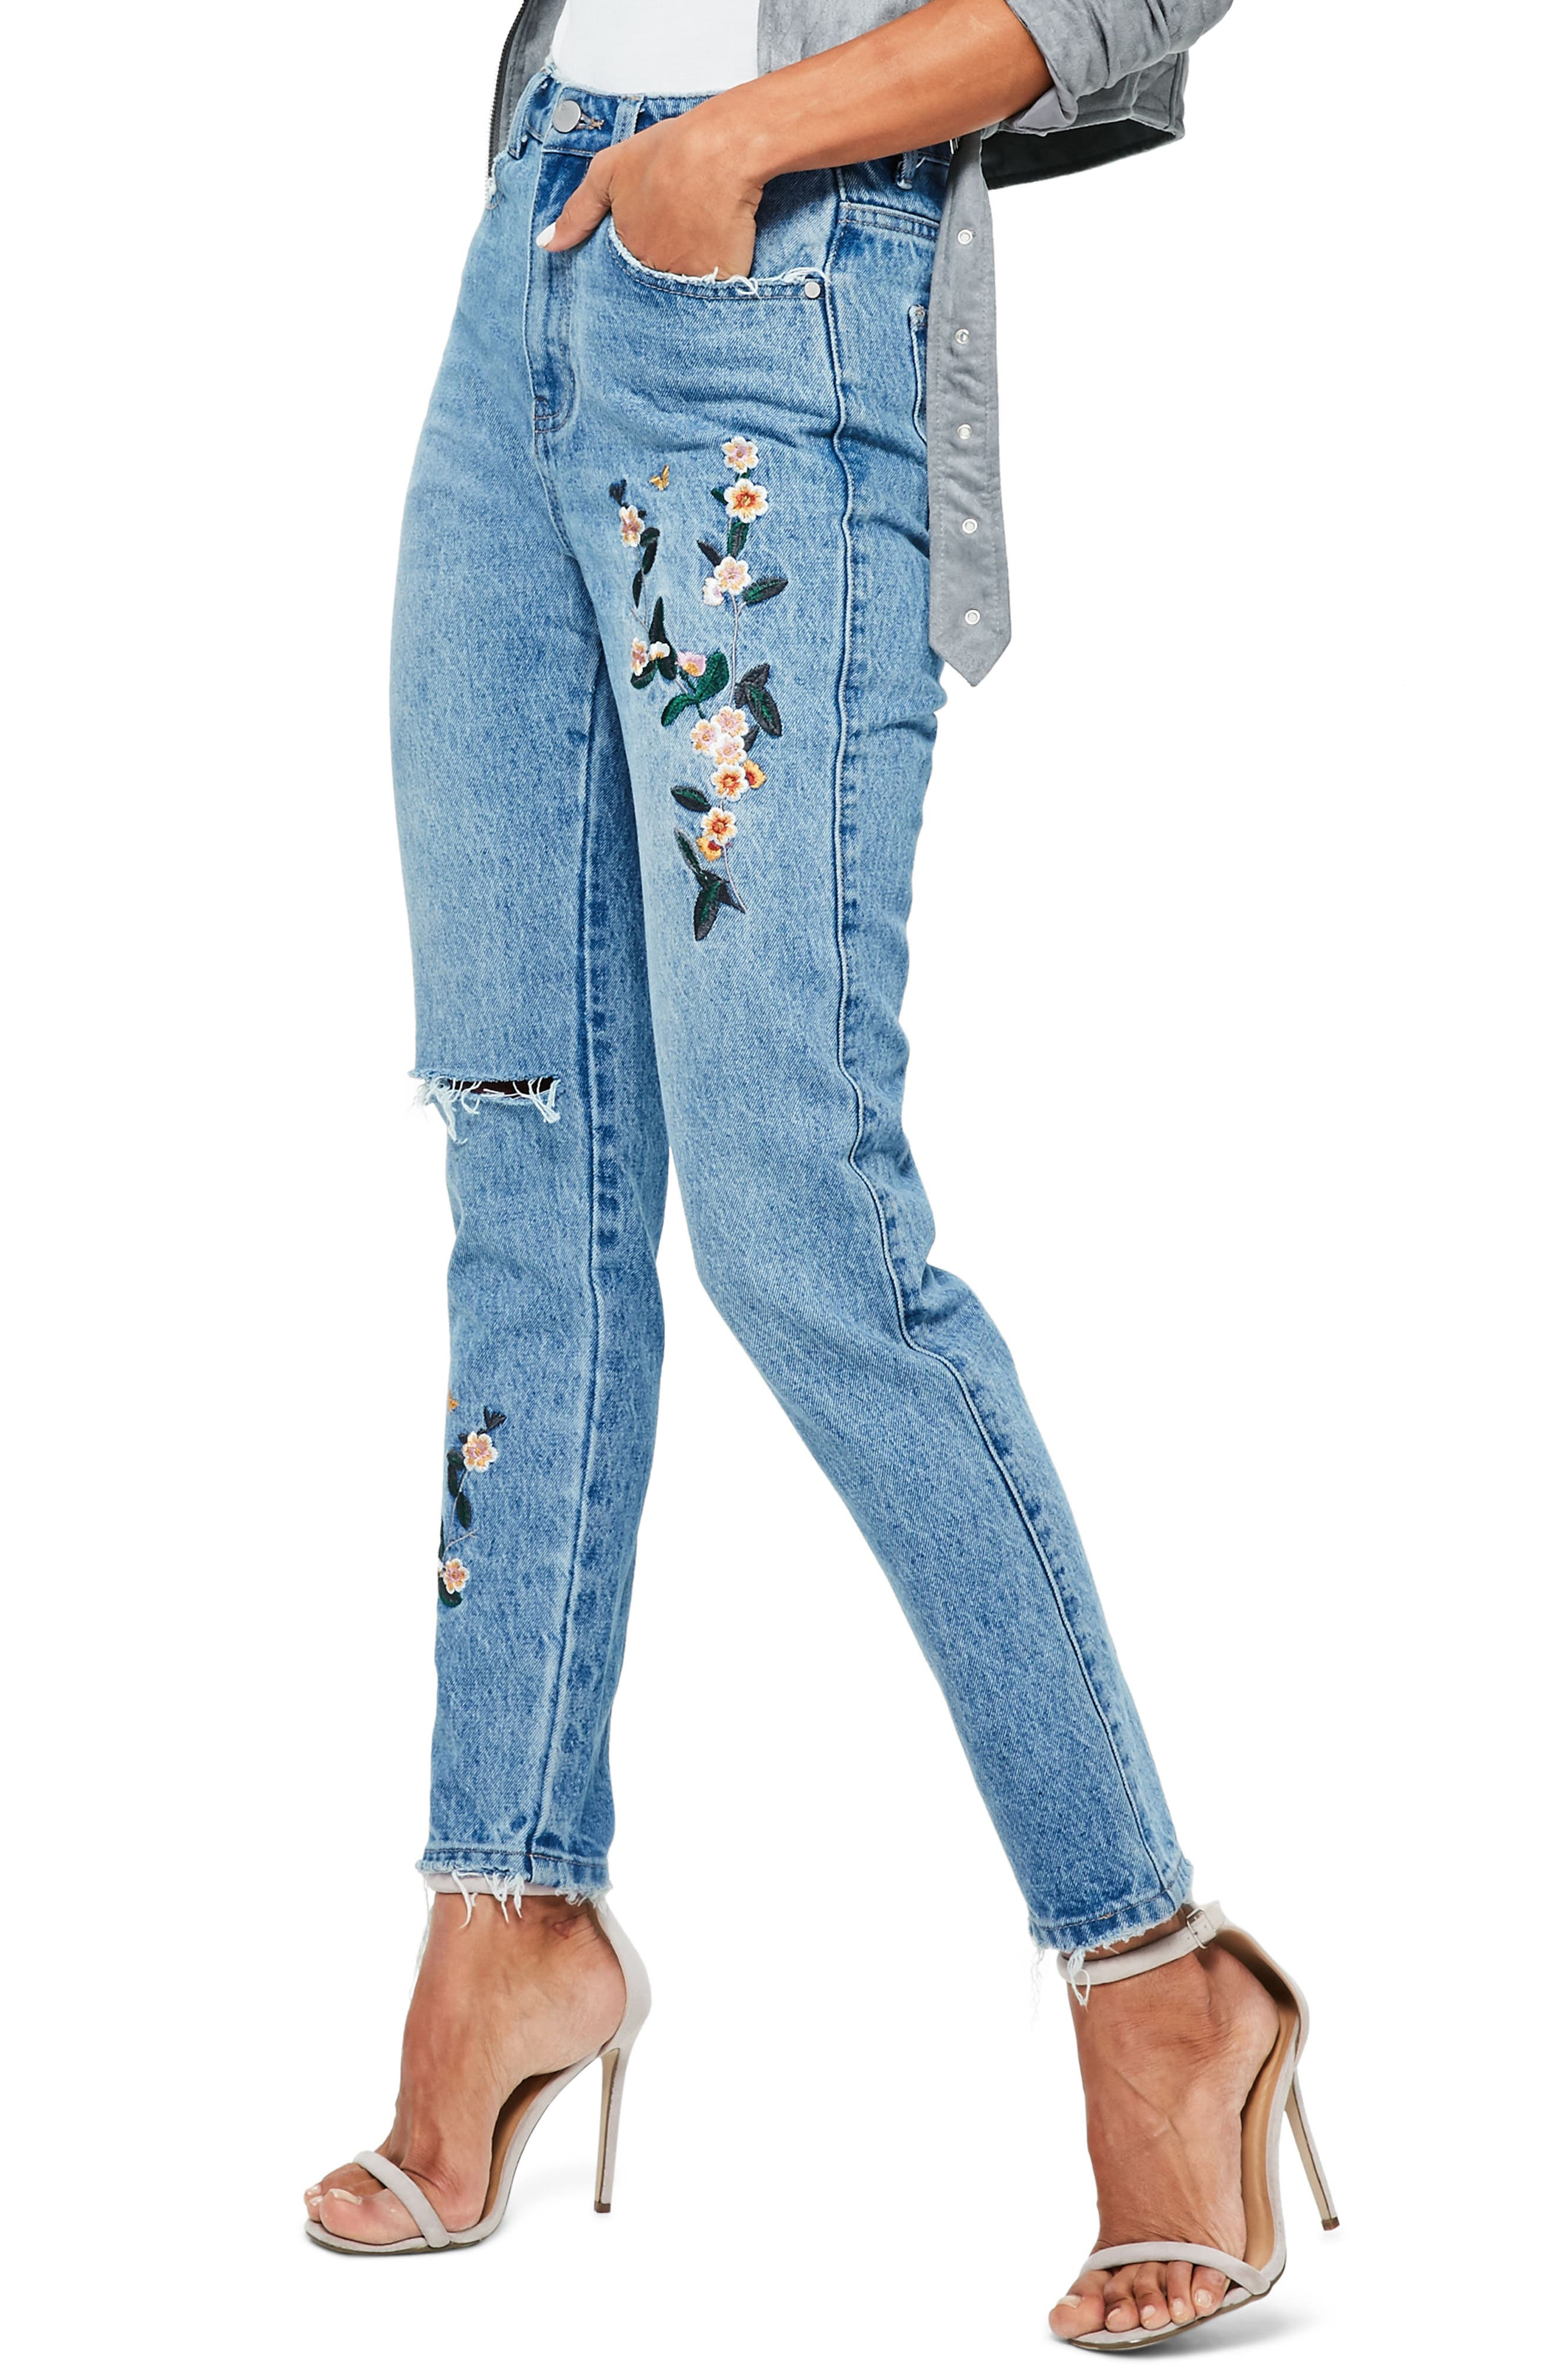 Riot Ripped High Waist Embroidered Jeans,                             Alternate thumbnail 3, color,                             400